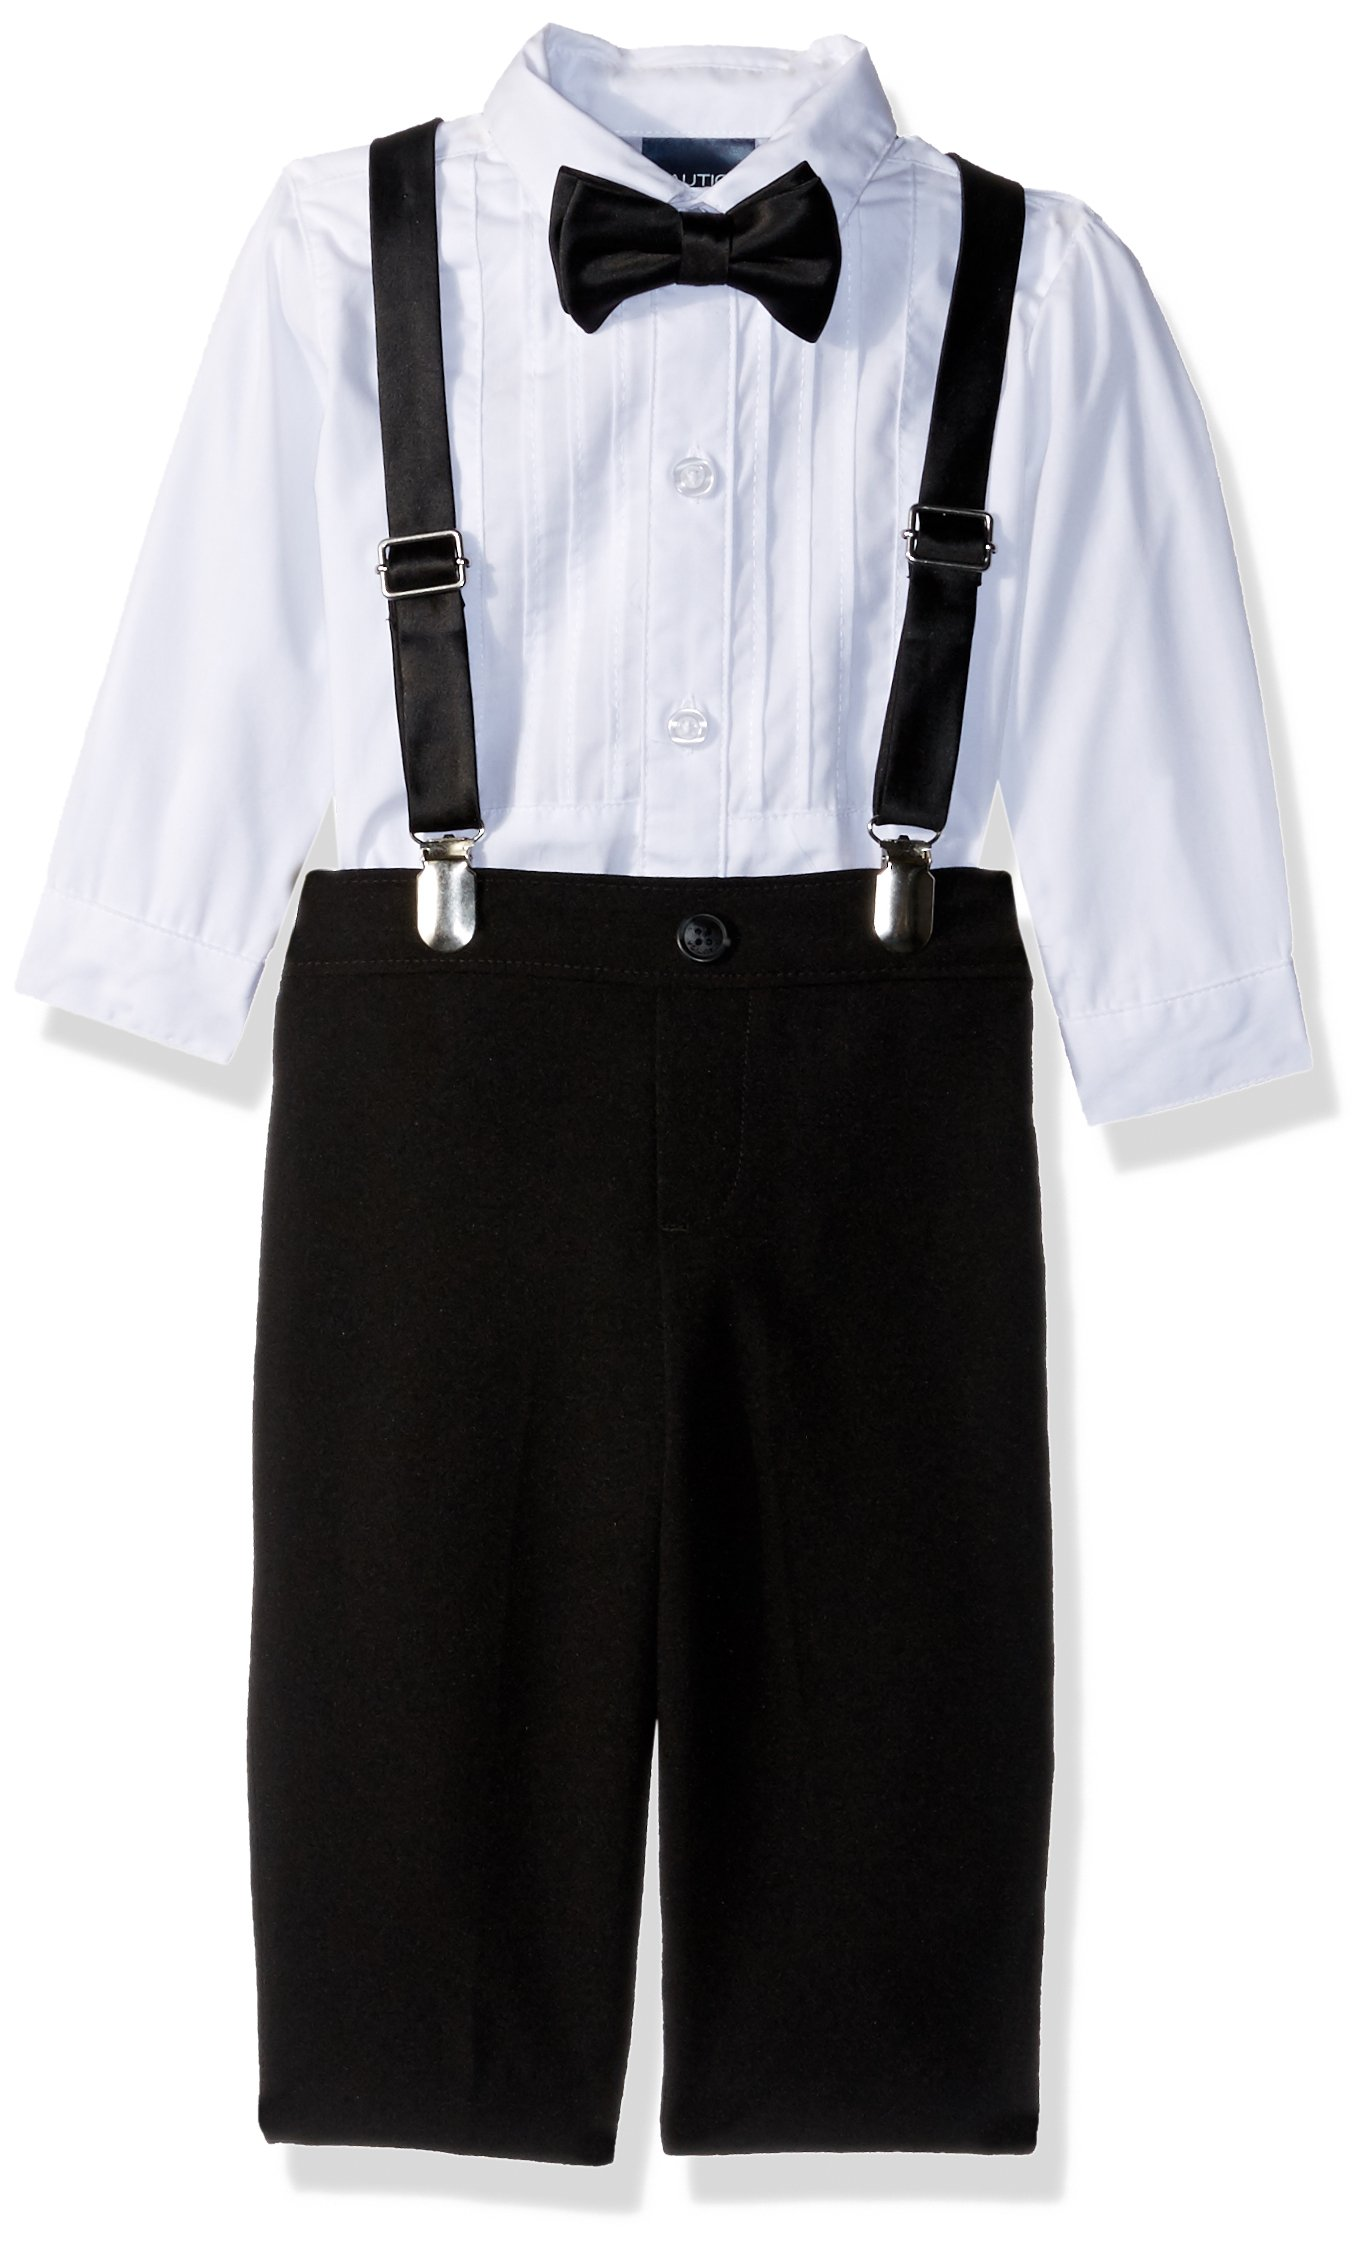 Nautica Baby Boys Set with Shirt, Pant, Suspenders, and Bow Tie, Black Tuxedo, 6-9 Months